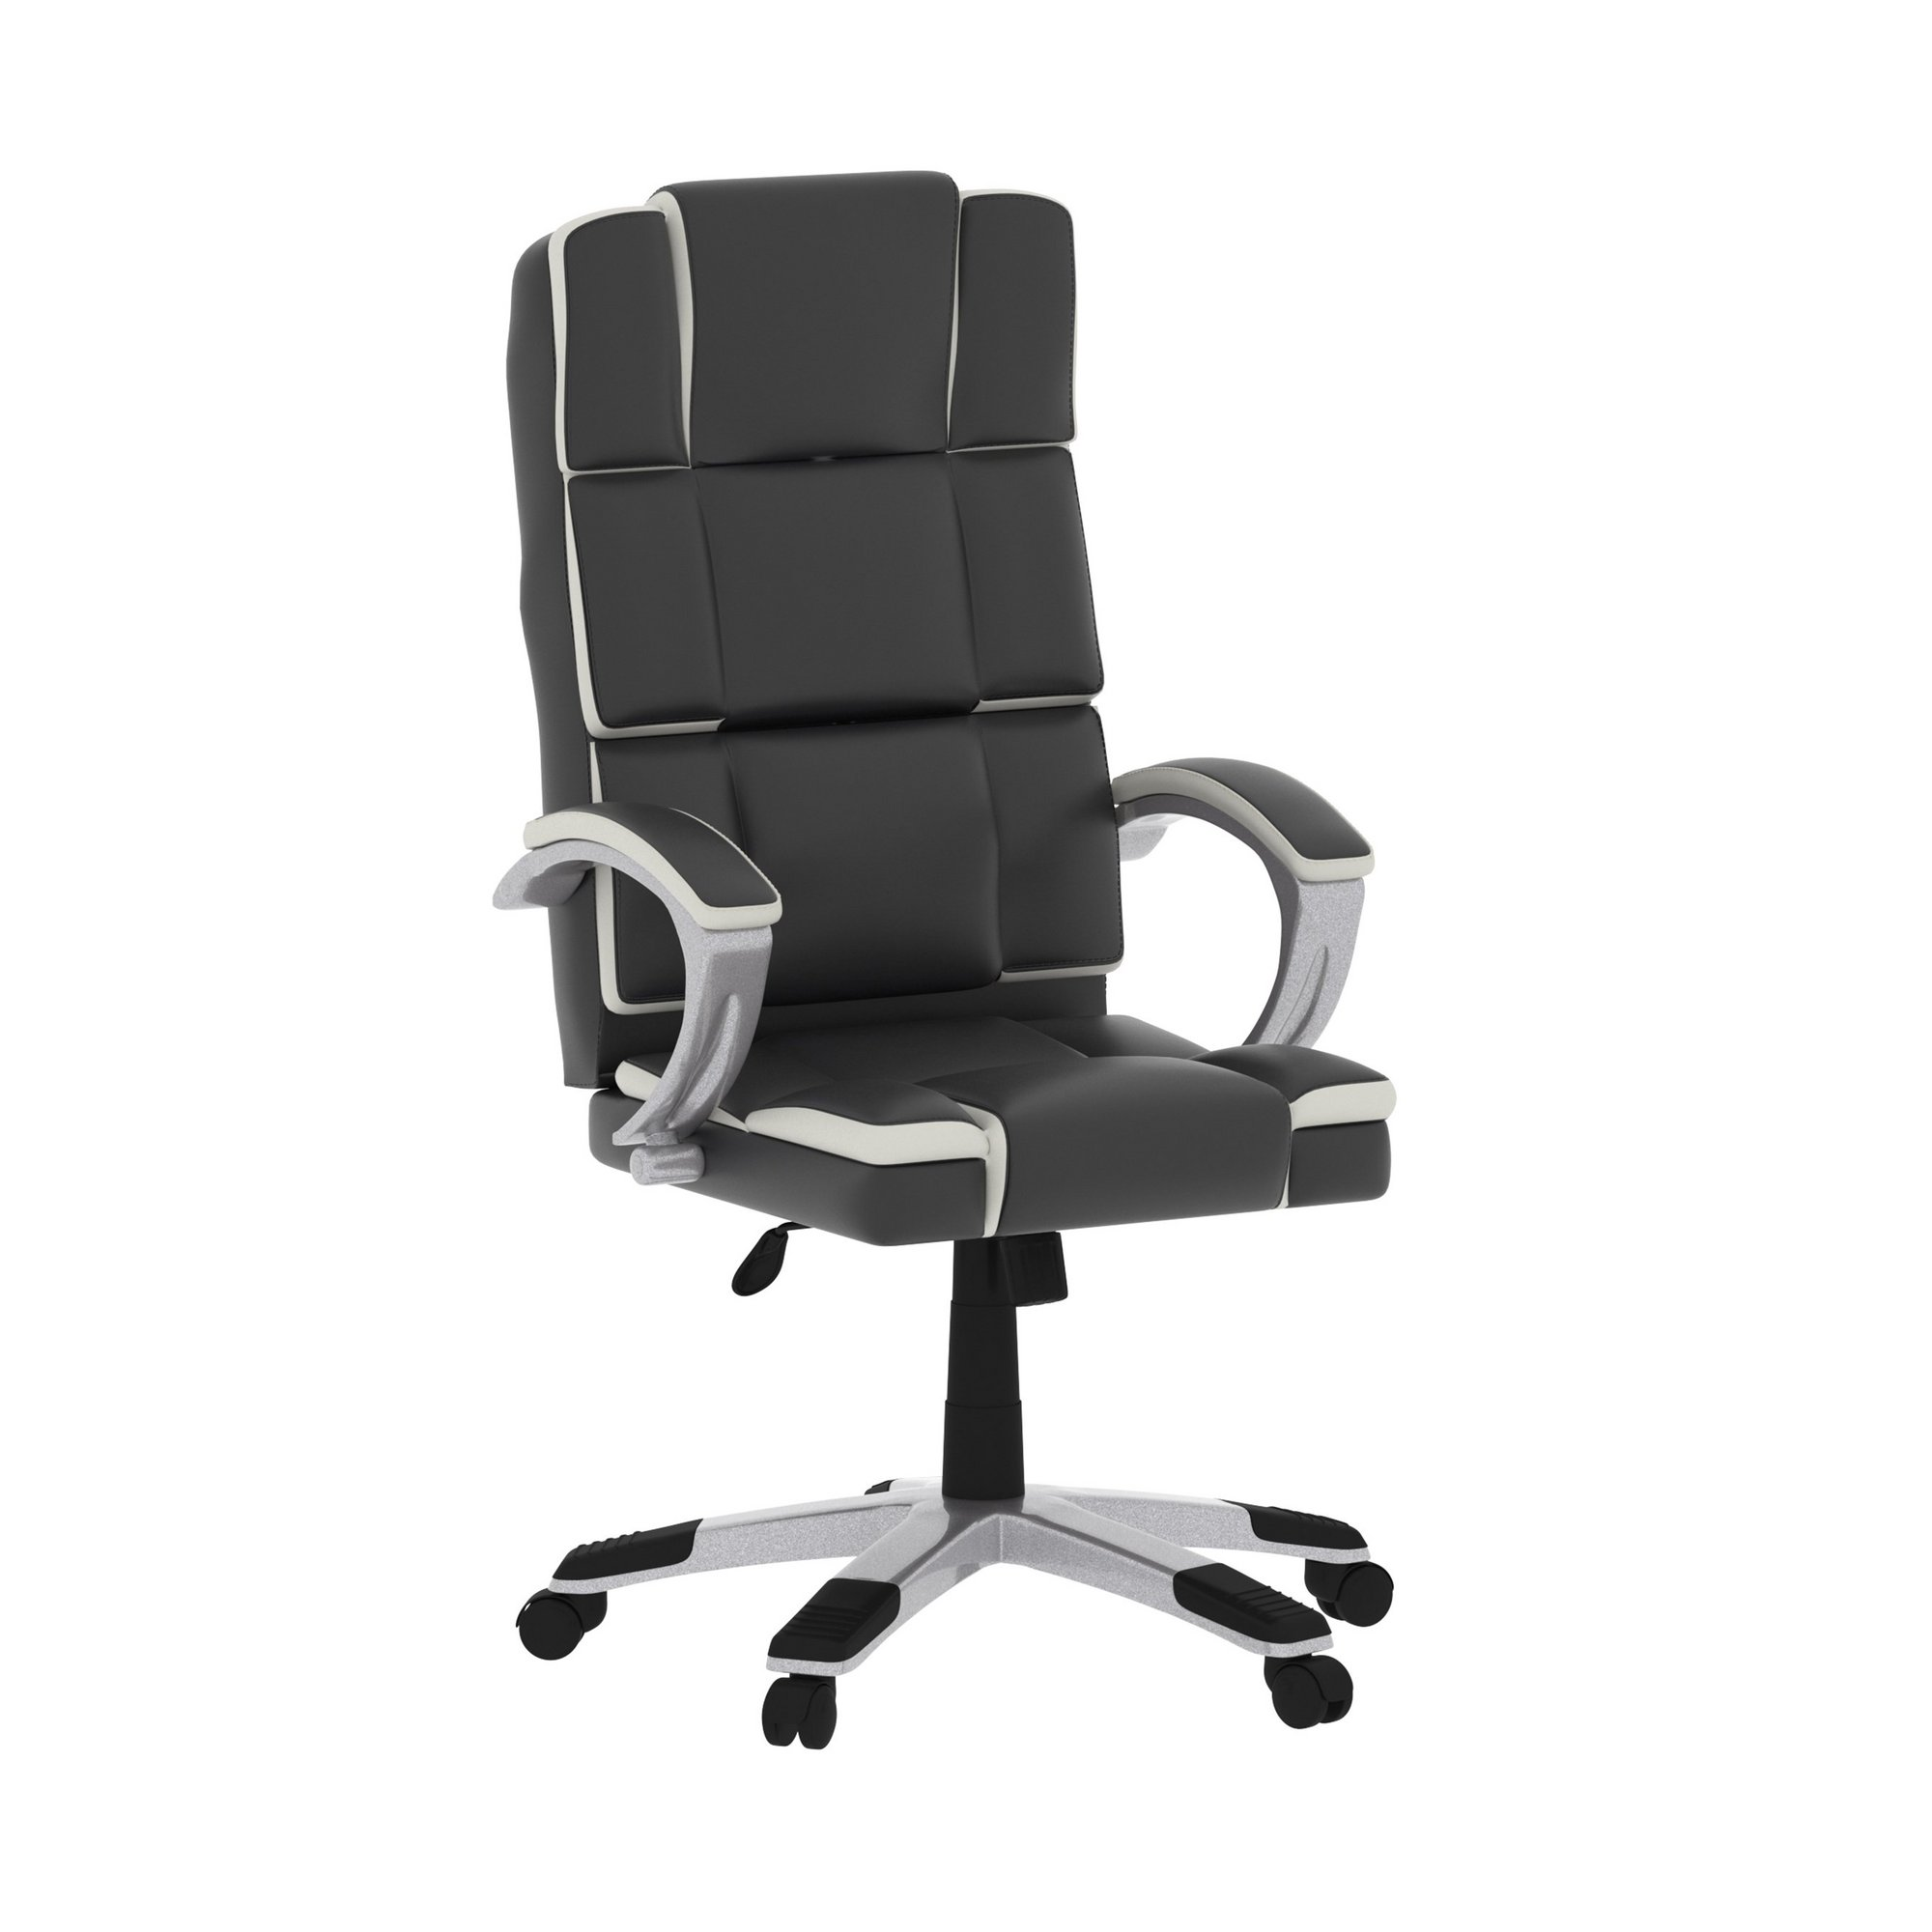 Image of Henderson Office Chair